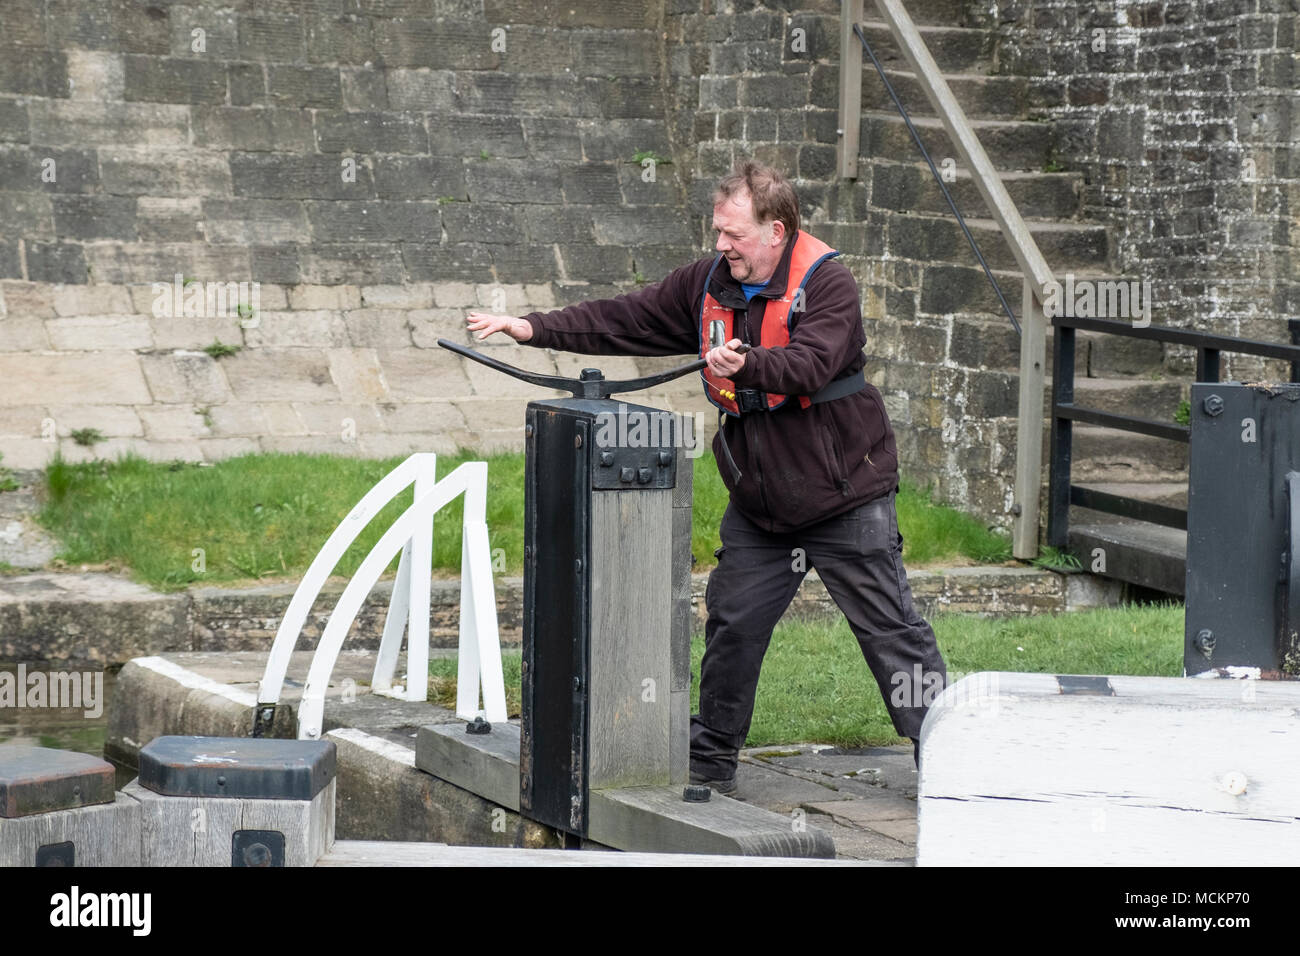 A Lock Keeper on The Five Rise Locks on the Leeds and Liverpool Canal,  Bingley, near Bradford, West Yorkshire, England. - Stock Image